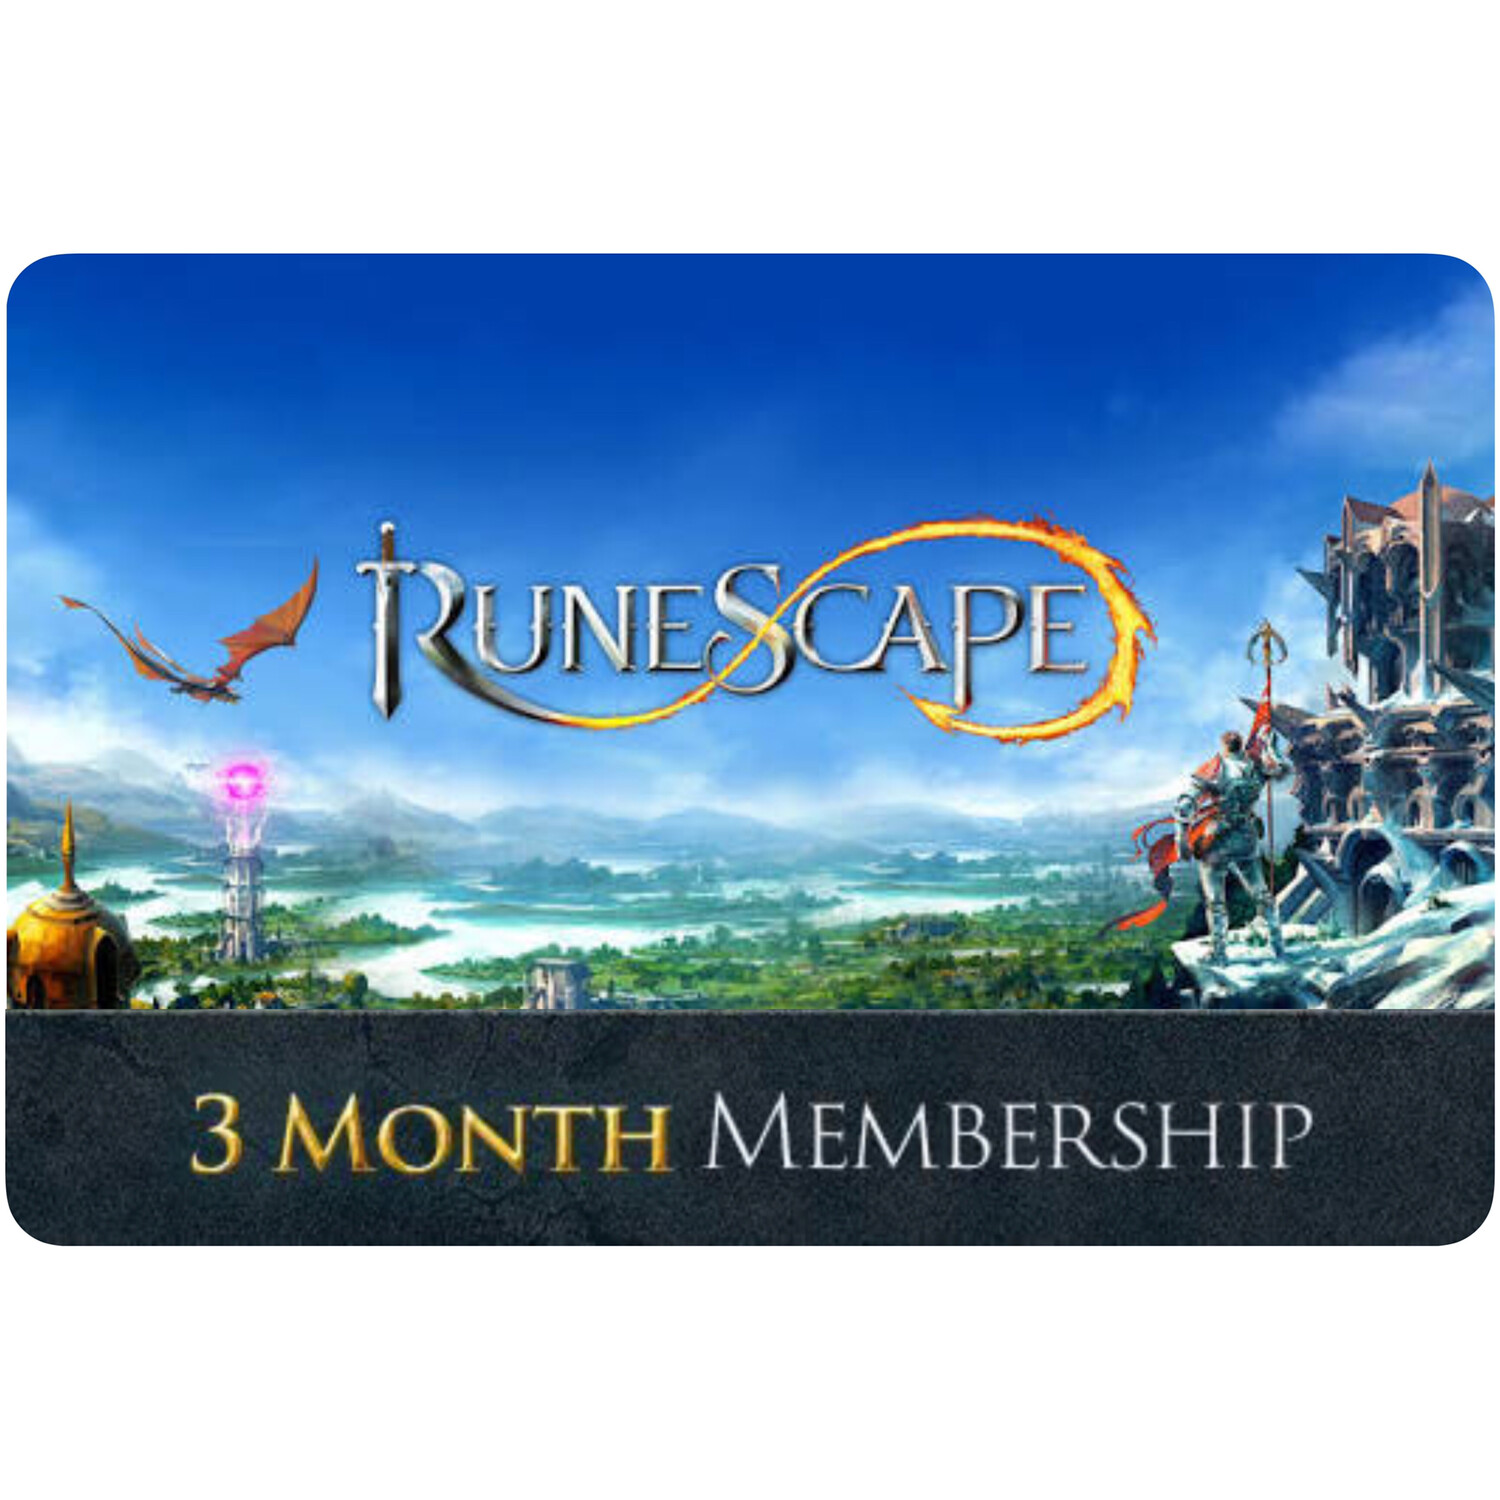 Runescape Membership 90 Day (3 Month)